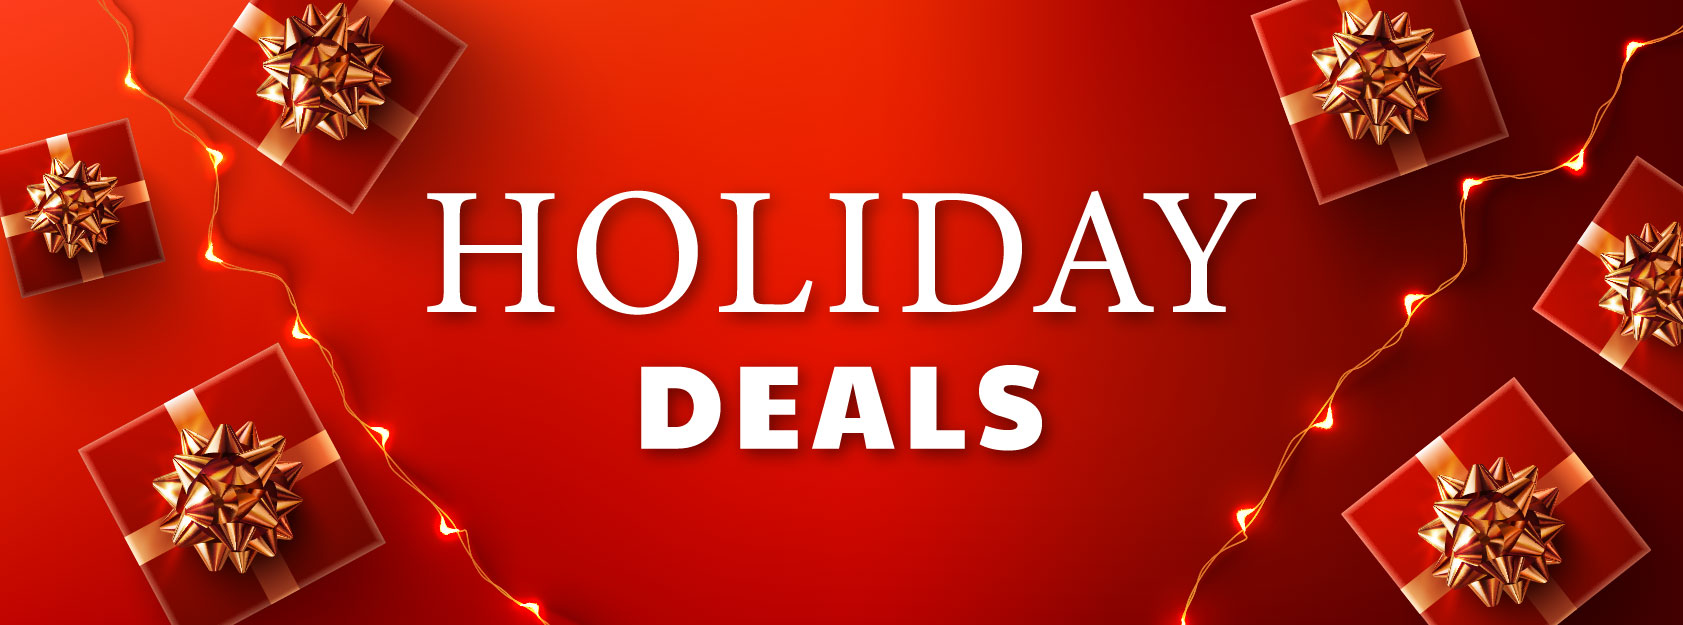 holiday deals on jewelry shoes gifts for her and gifts for girlfriend